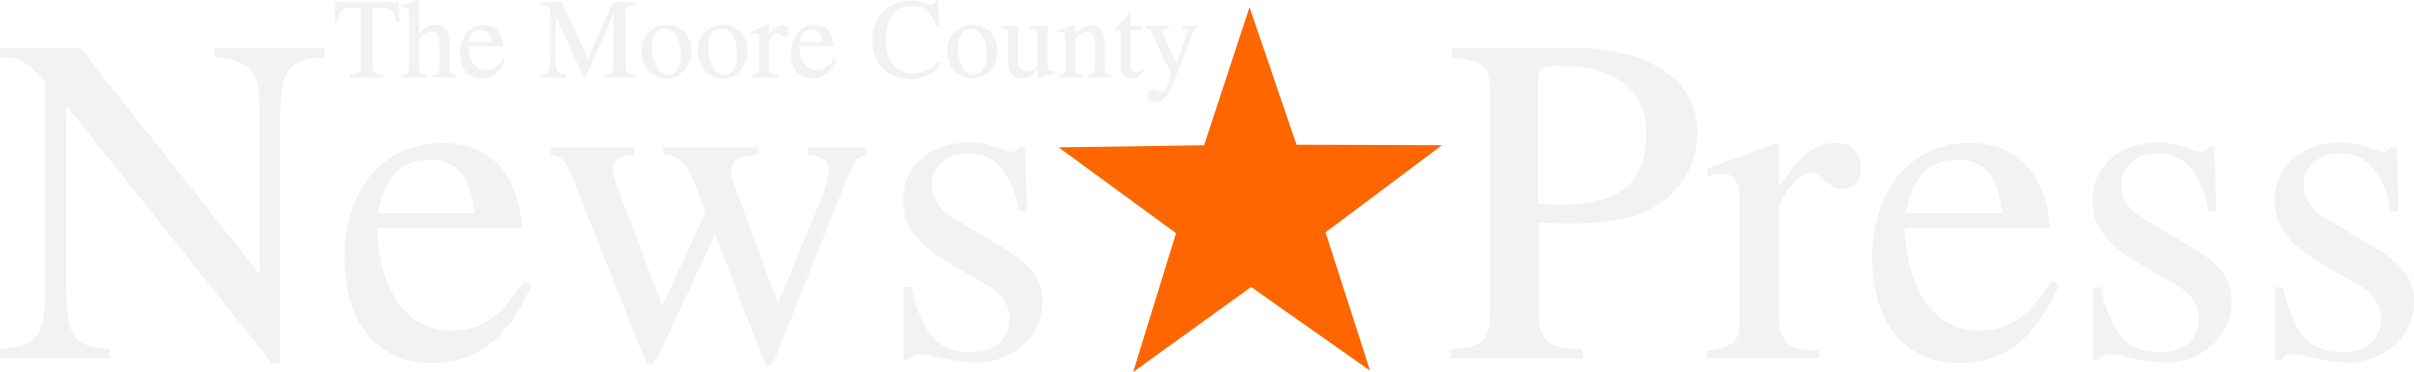 The Moore County News Press